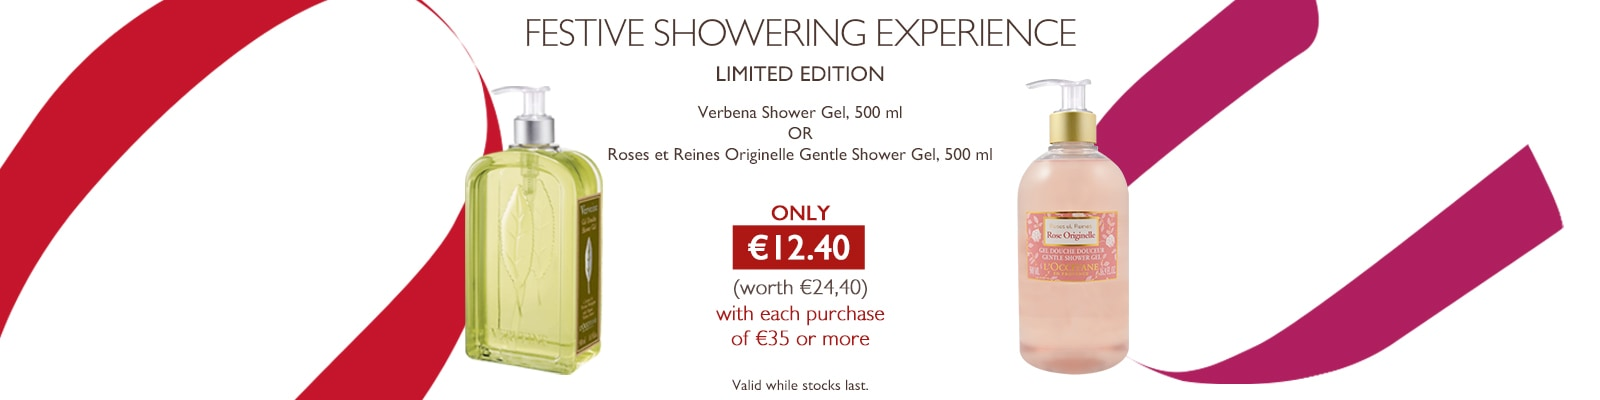 LUXURIOUS, FESTIVE SHOWERING EXPERIENCE